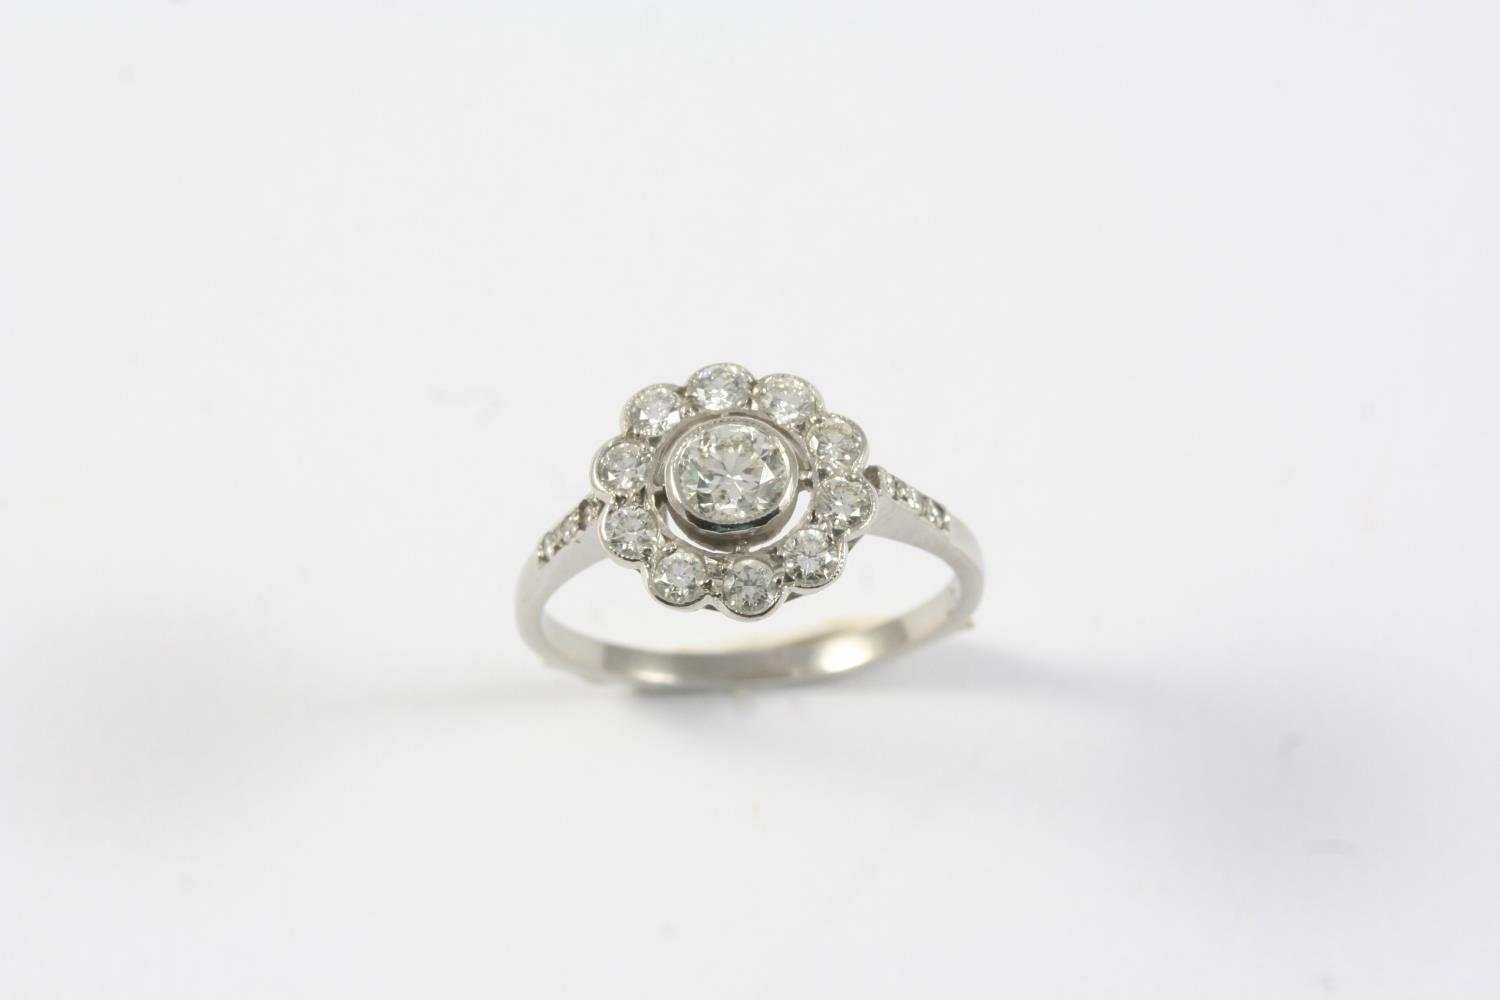 A DIAMOND CLUSTER RING of flowerhead form, set with circular-cut diamonds, in platinum. Size M 1/2